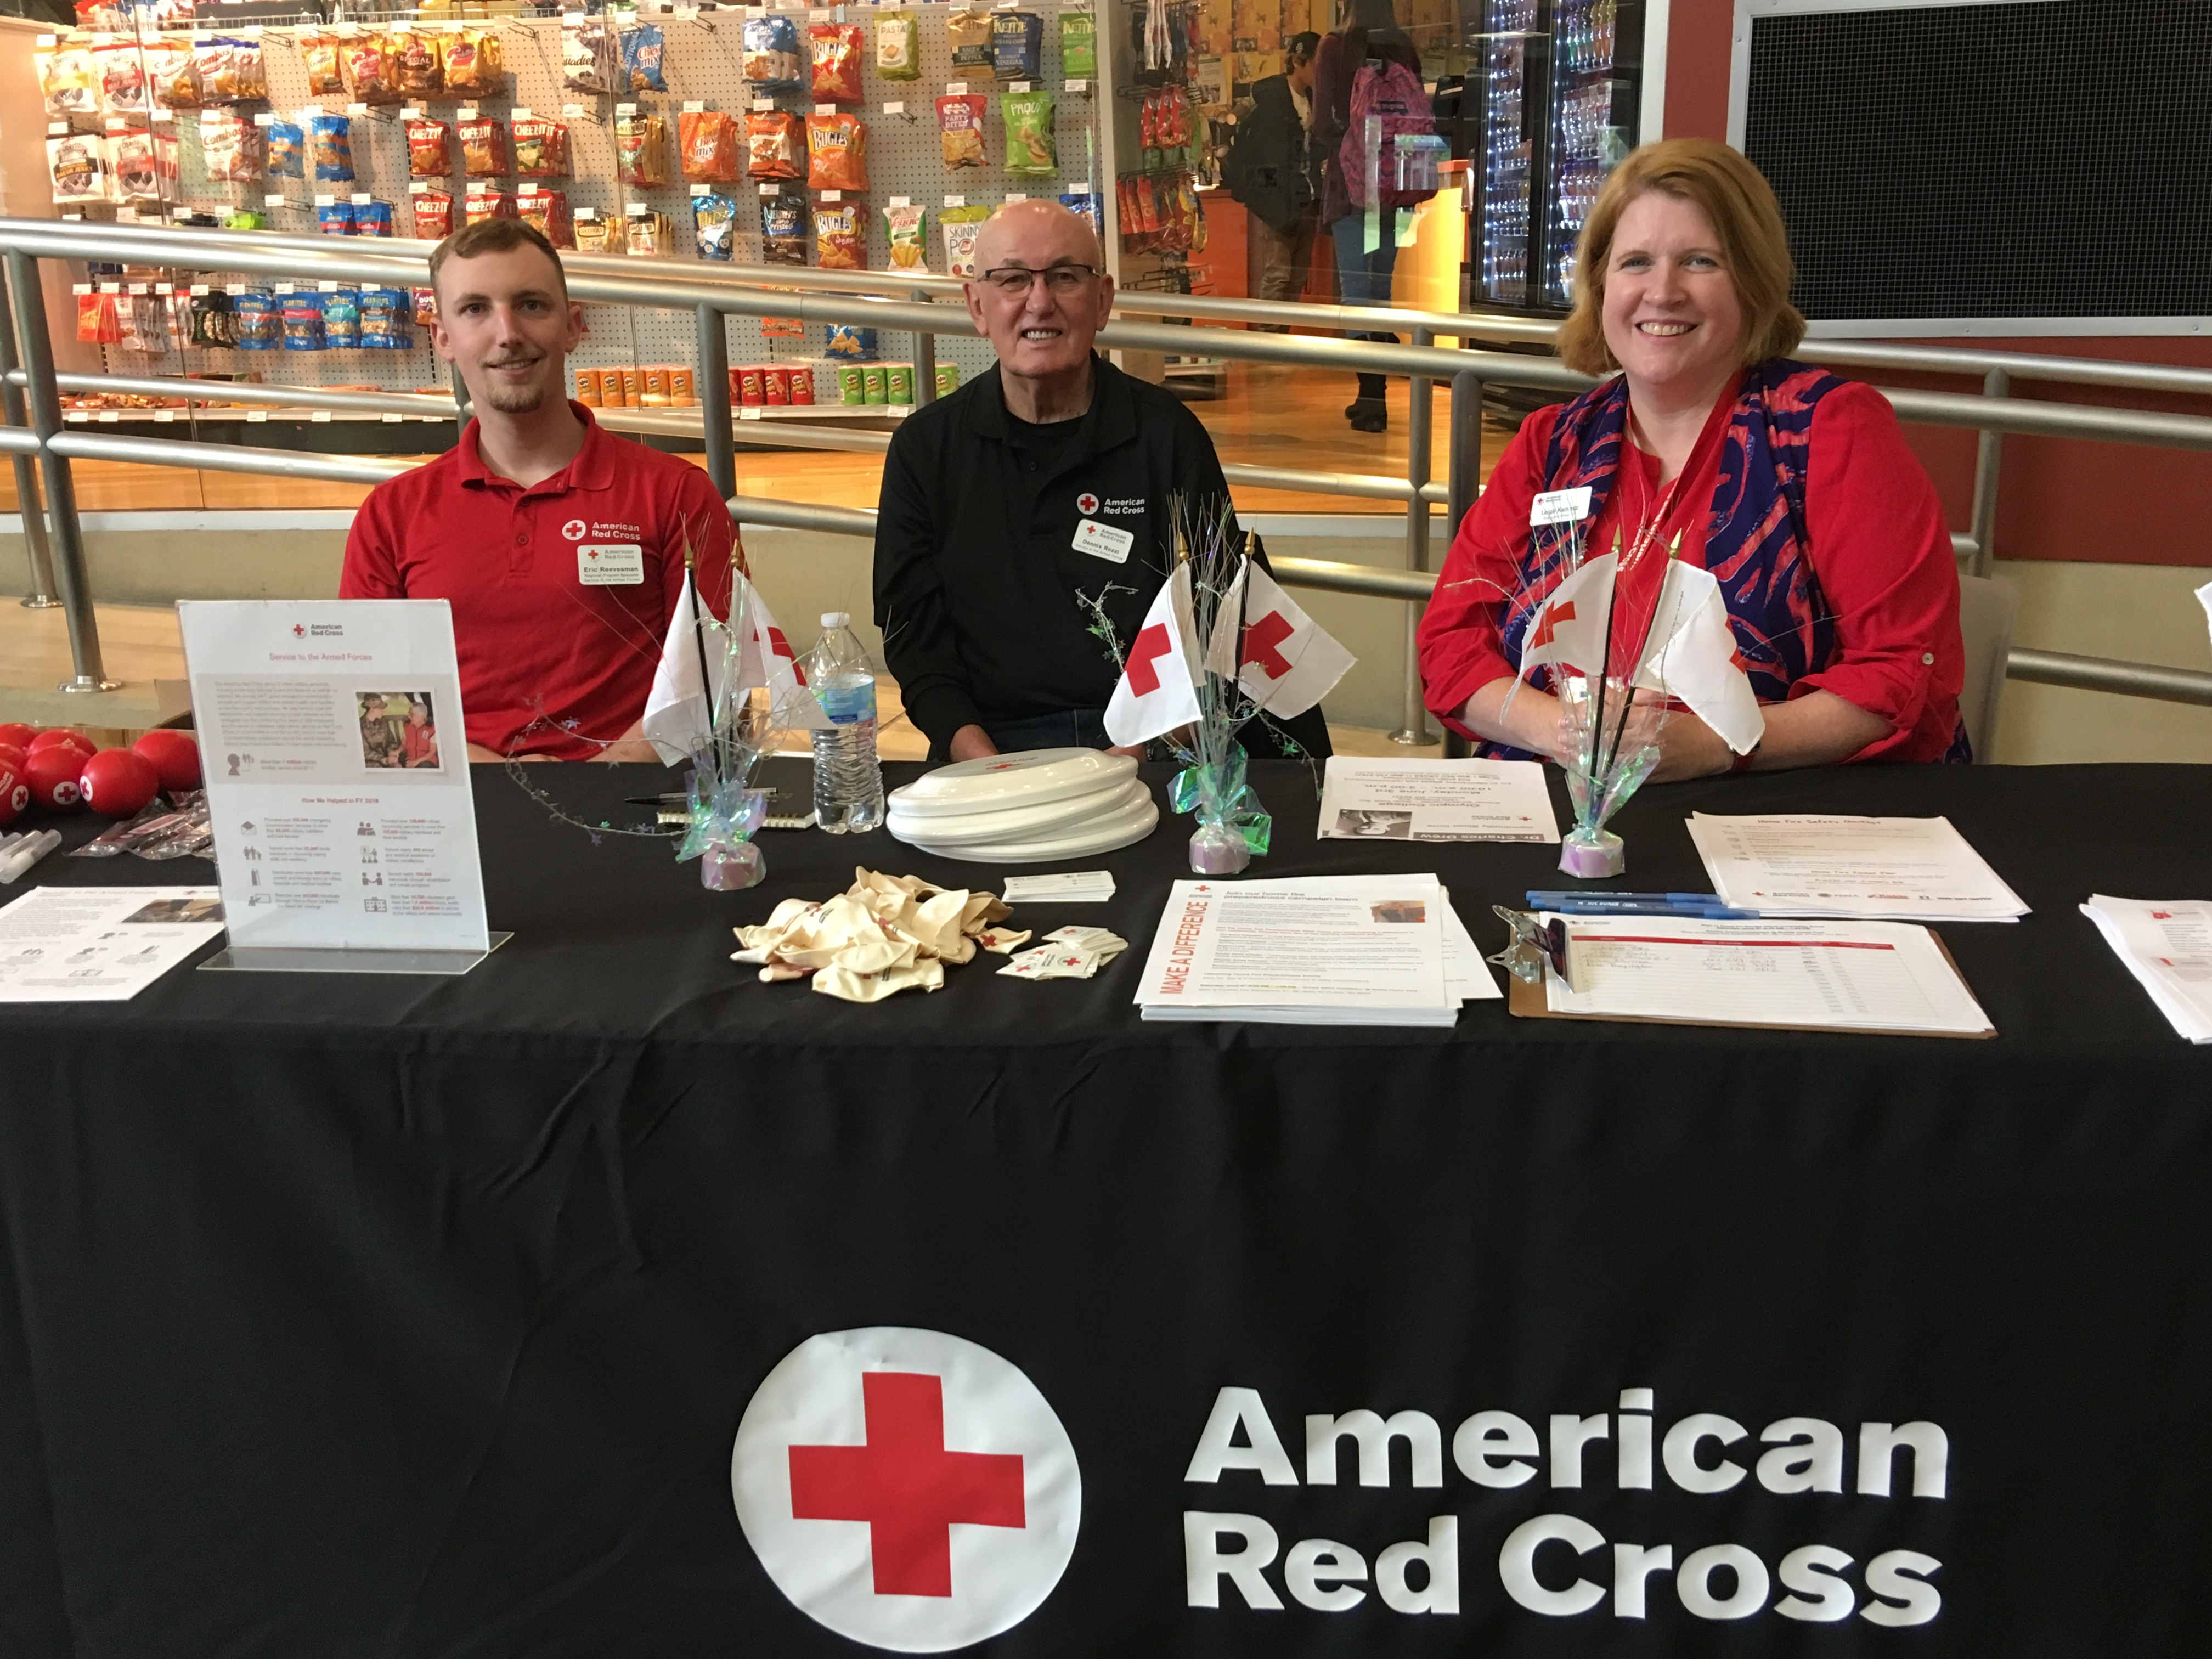 Dr Charles Drew Inspires A Diverse Blood Drive At Olympic